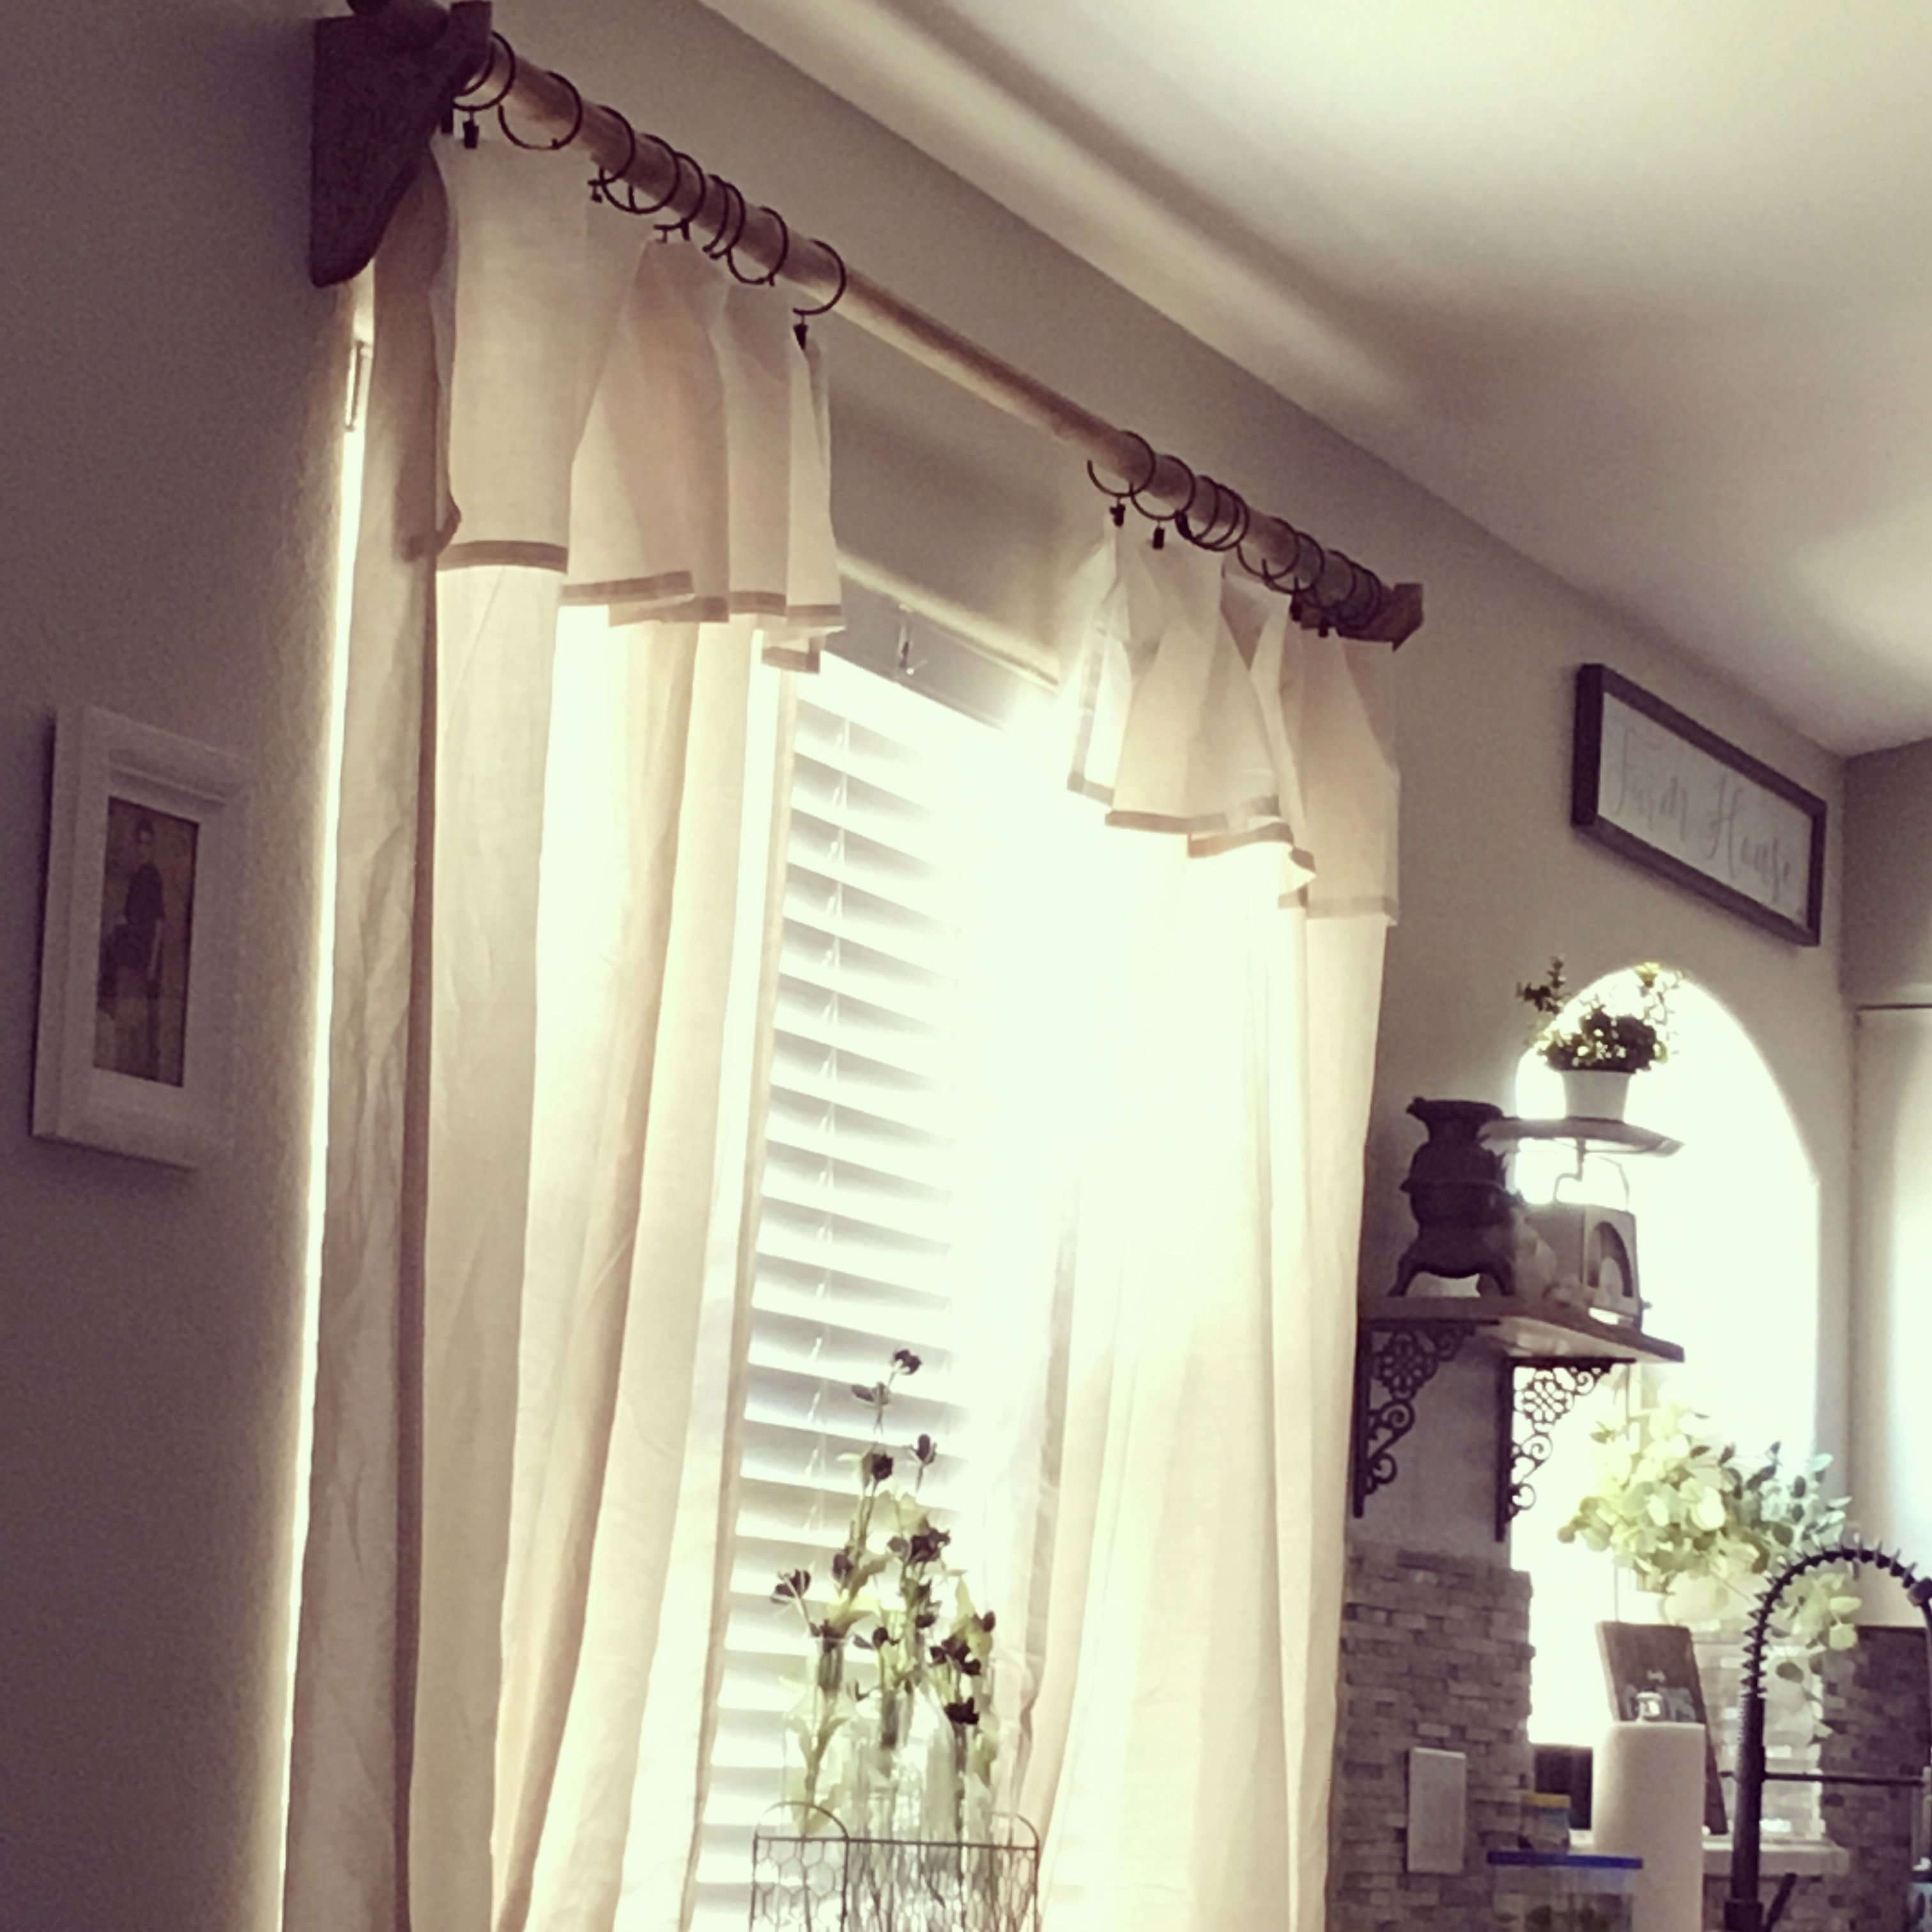 Rustic Curtains For Living Room 10 Fabulous Ideas Curtains Styles Budget Sheer Curtains Fabric